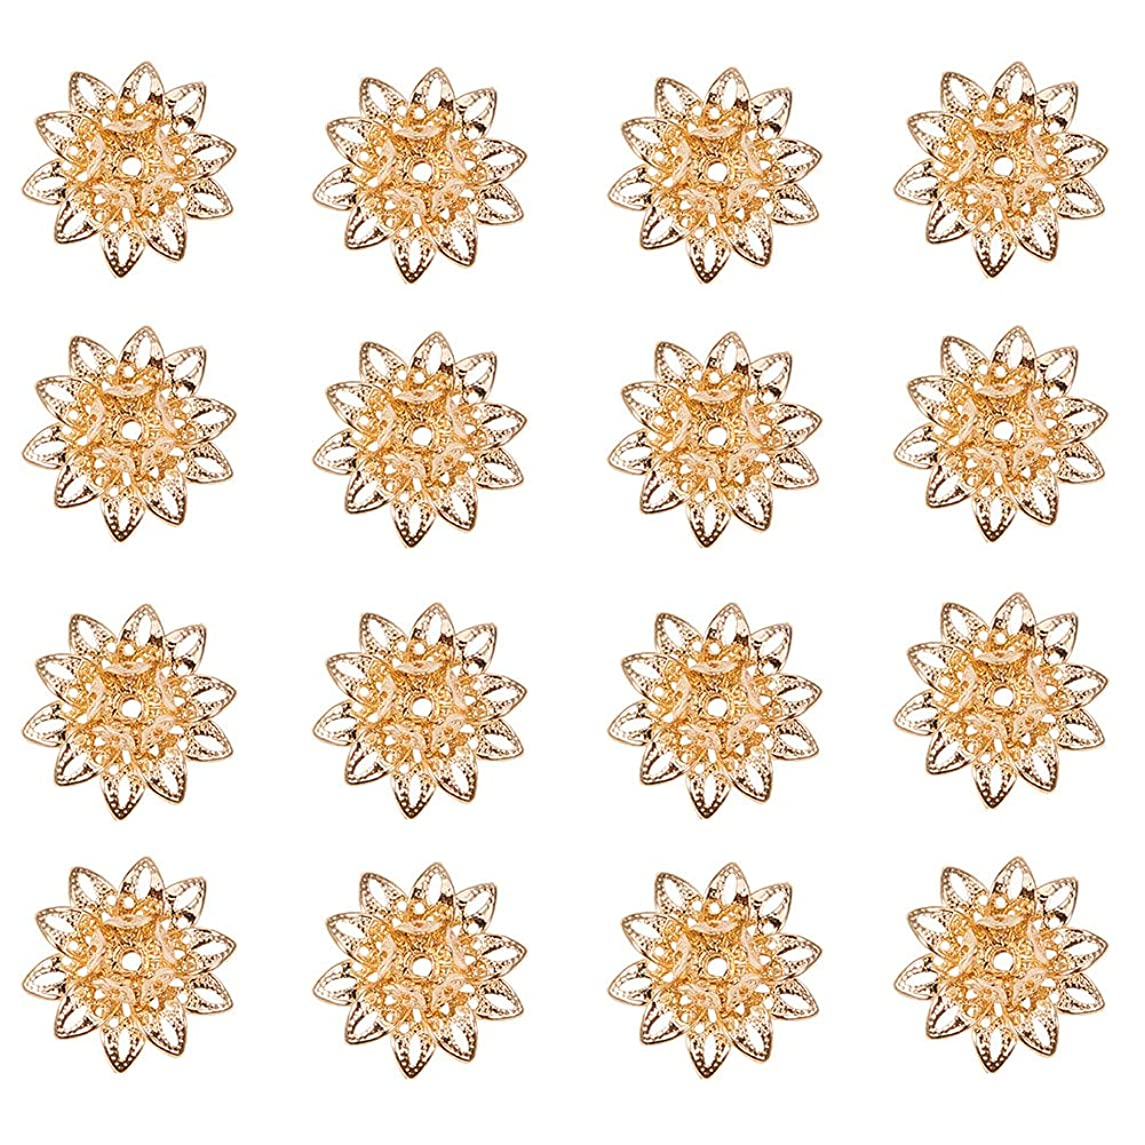 PandaHall Elite About 20 Pcs Brass Hollow Flower Petal Bead Caps Spacers 16x8mm for Jewelry Making Gold